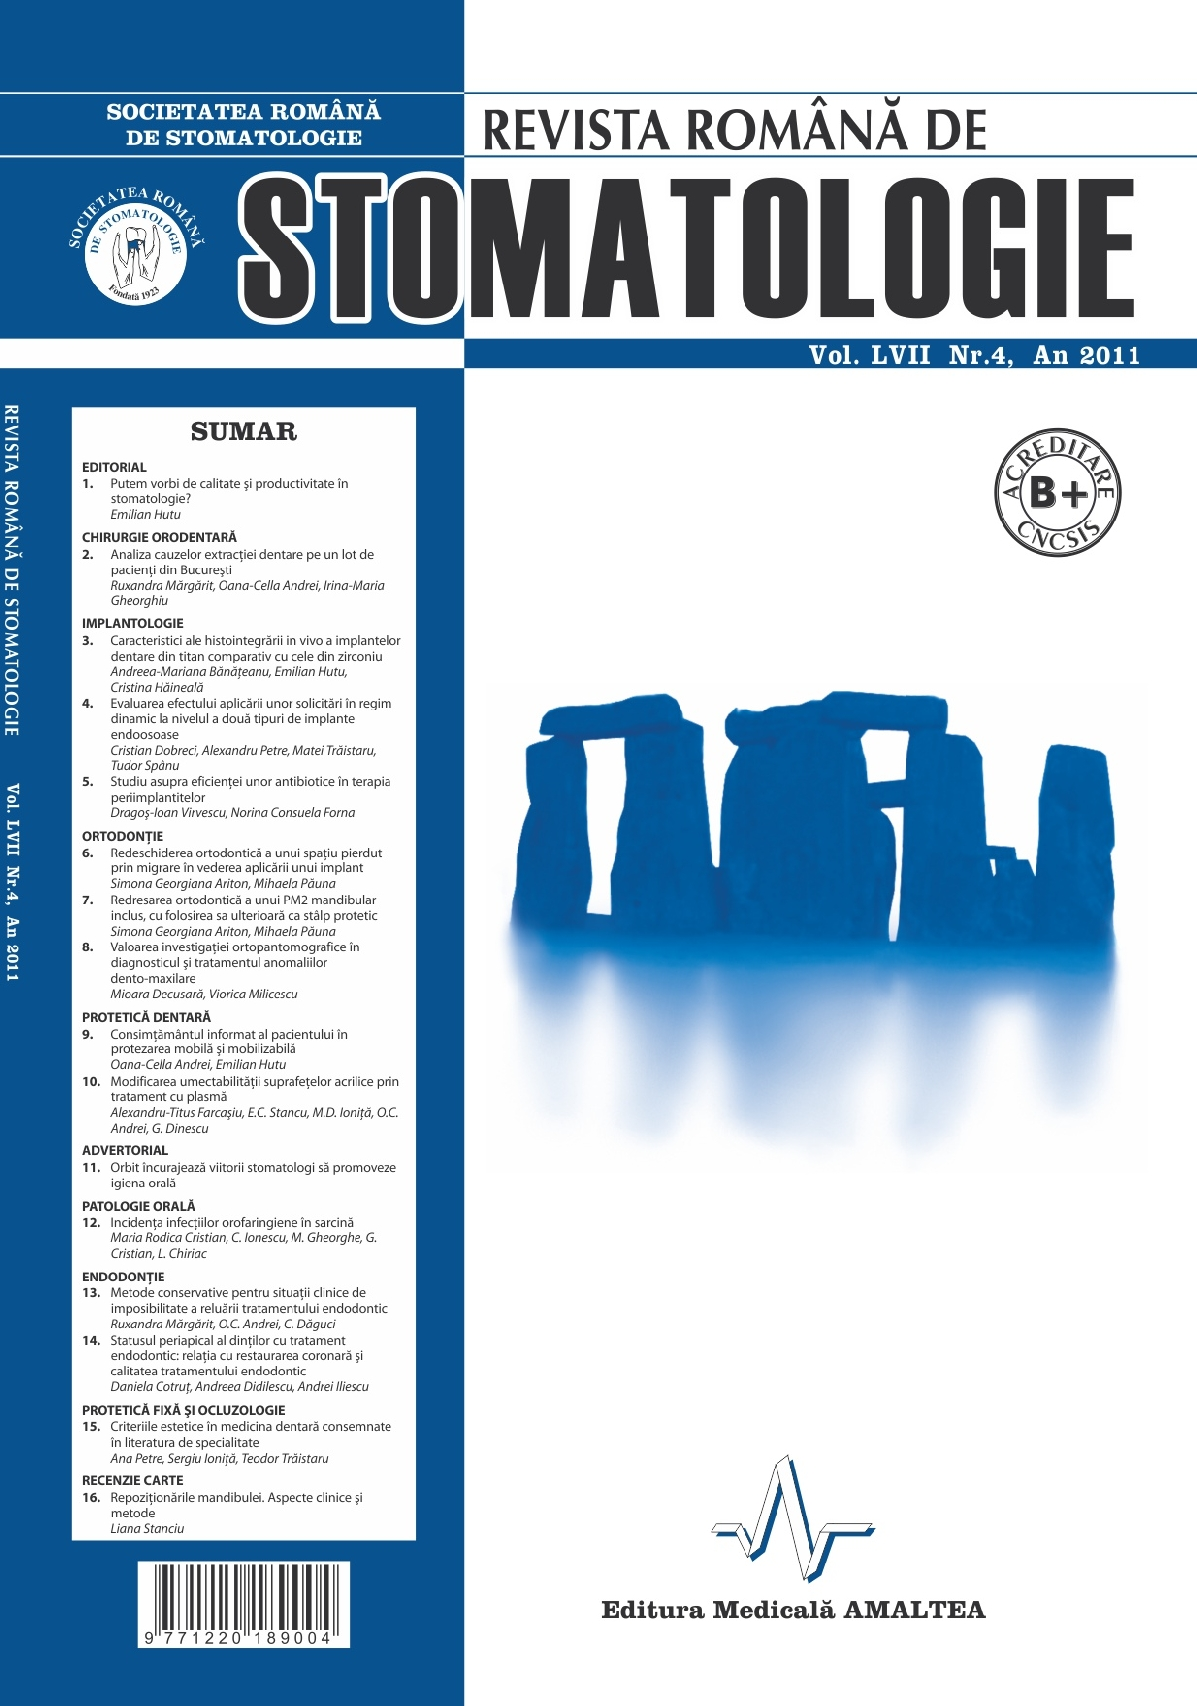 Revista Romana de STOMATOLOGIE - Romanian Journal of Stomatology, Vol. LVII, Nr. 4, An 2011